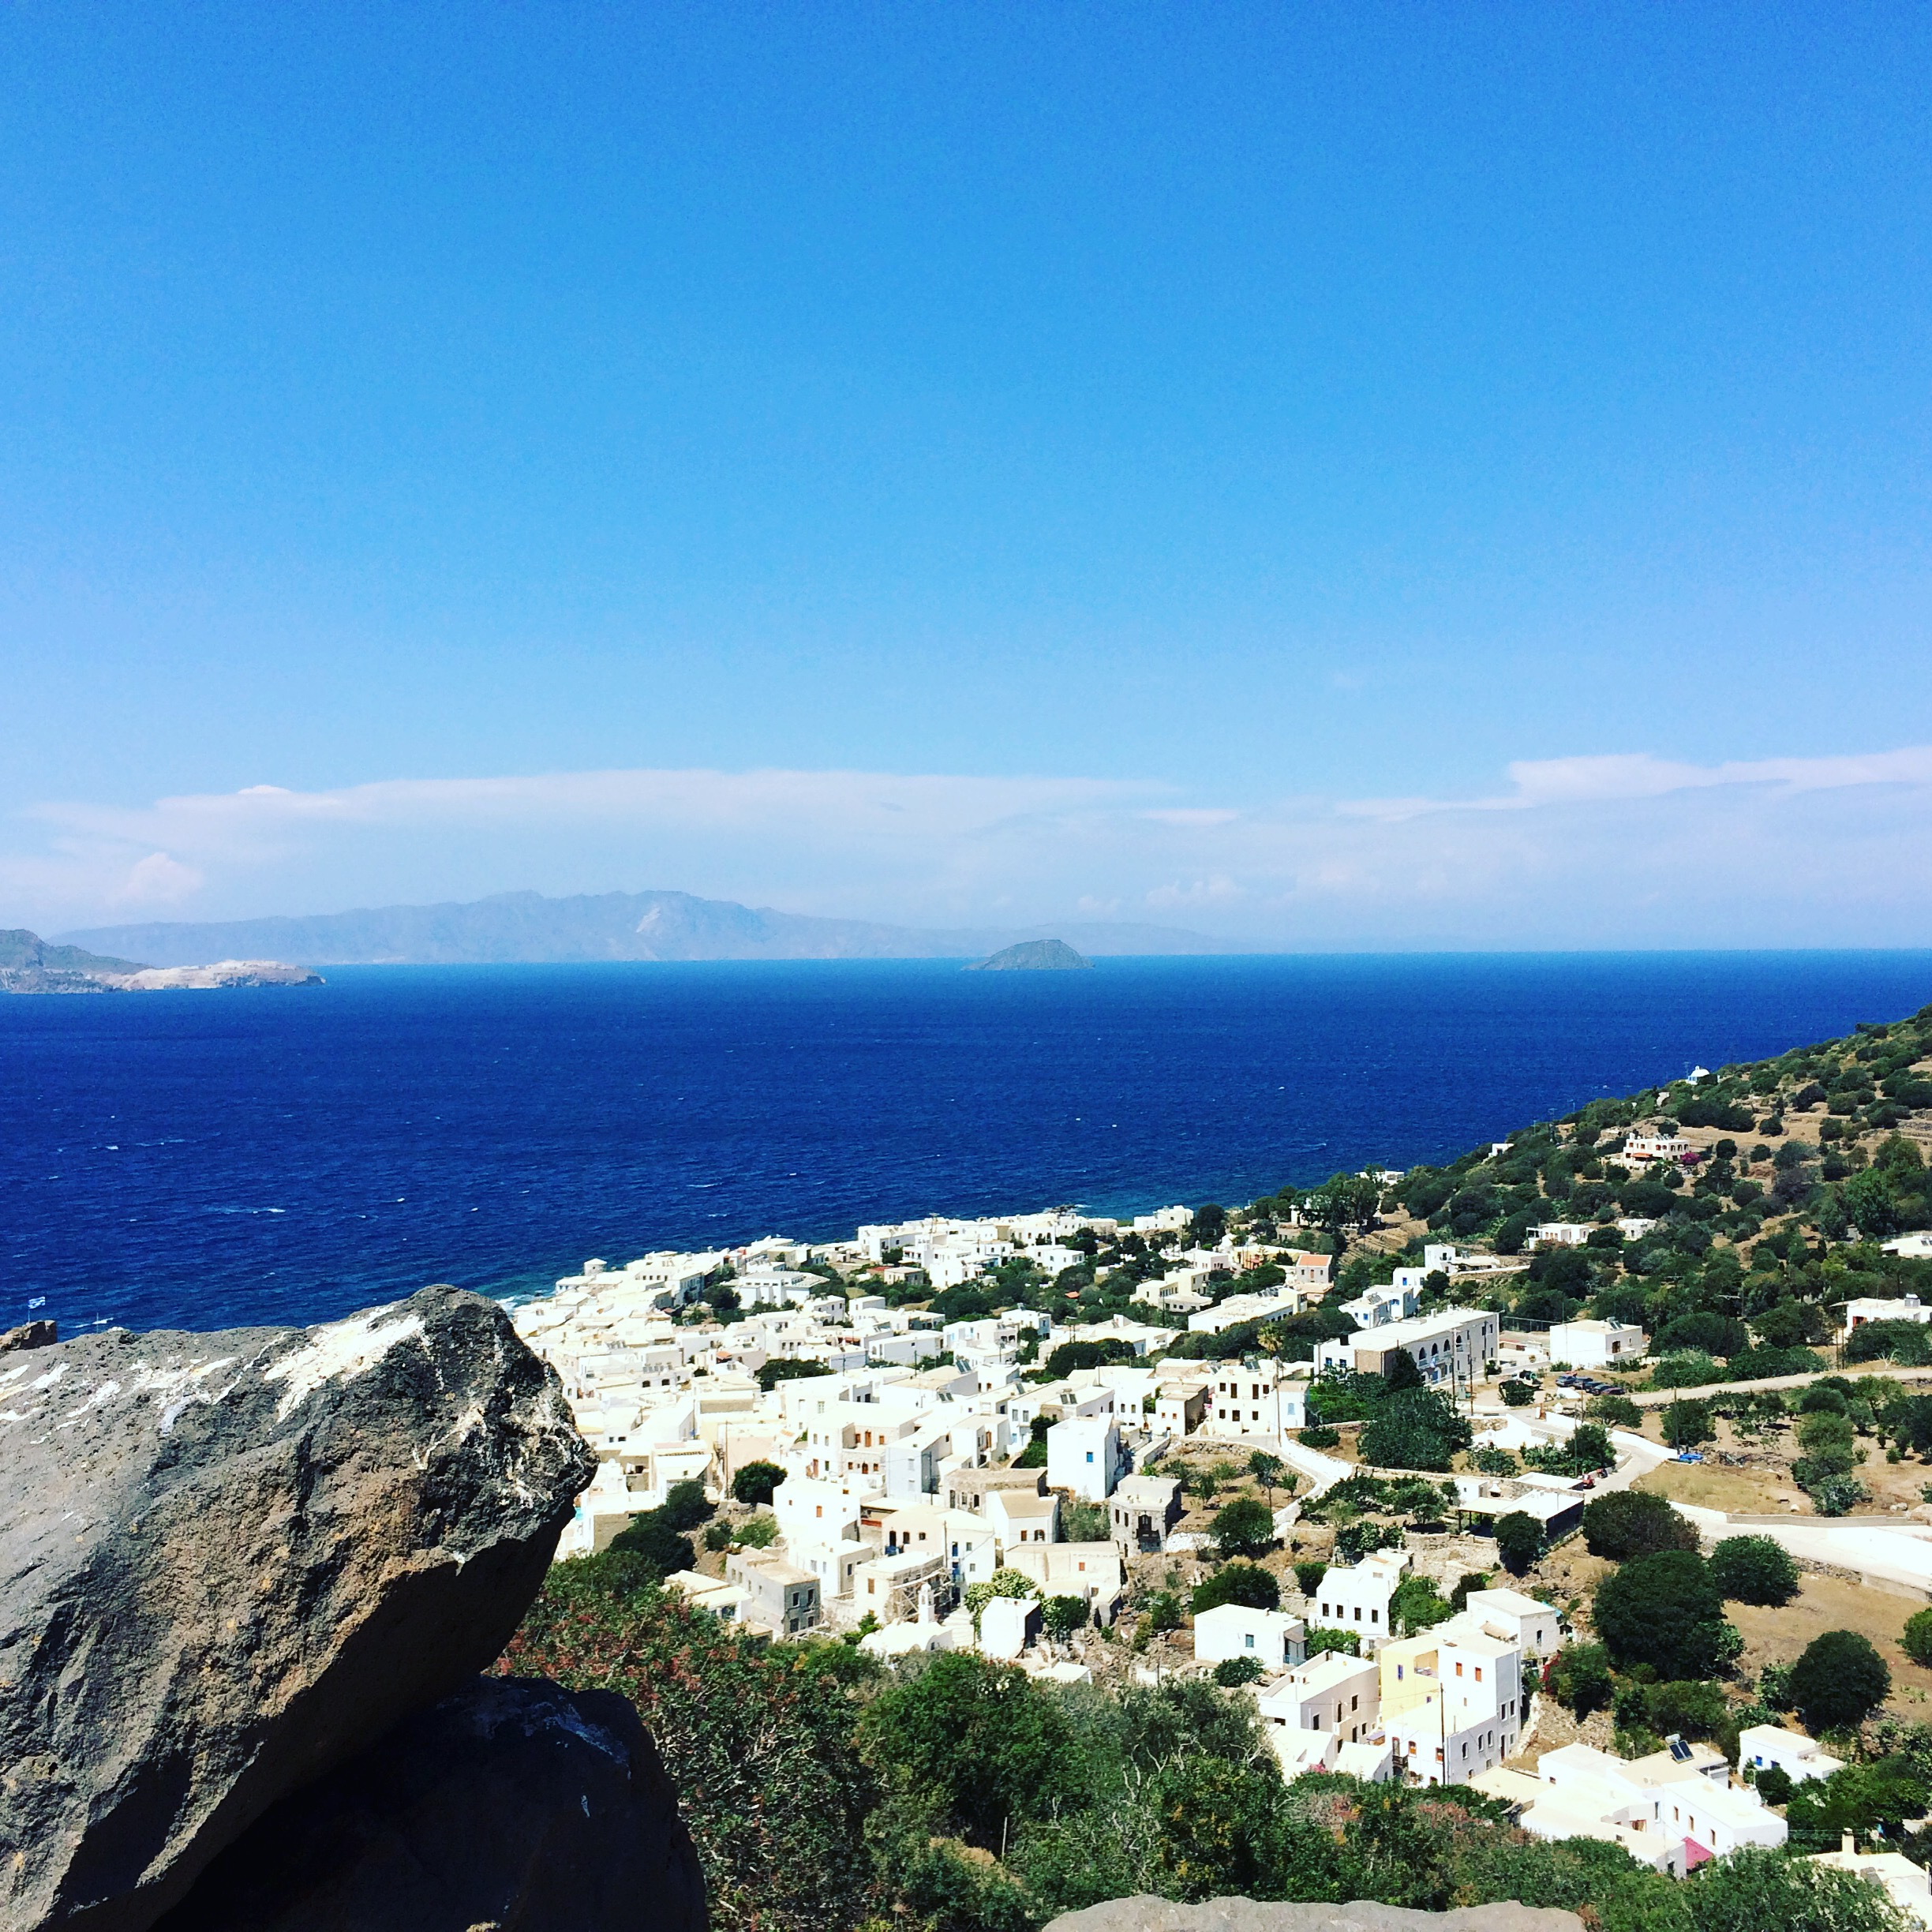 The village of Mandraki on the Greek island of Nisyros, where the first session of the workshops takes place.